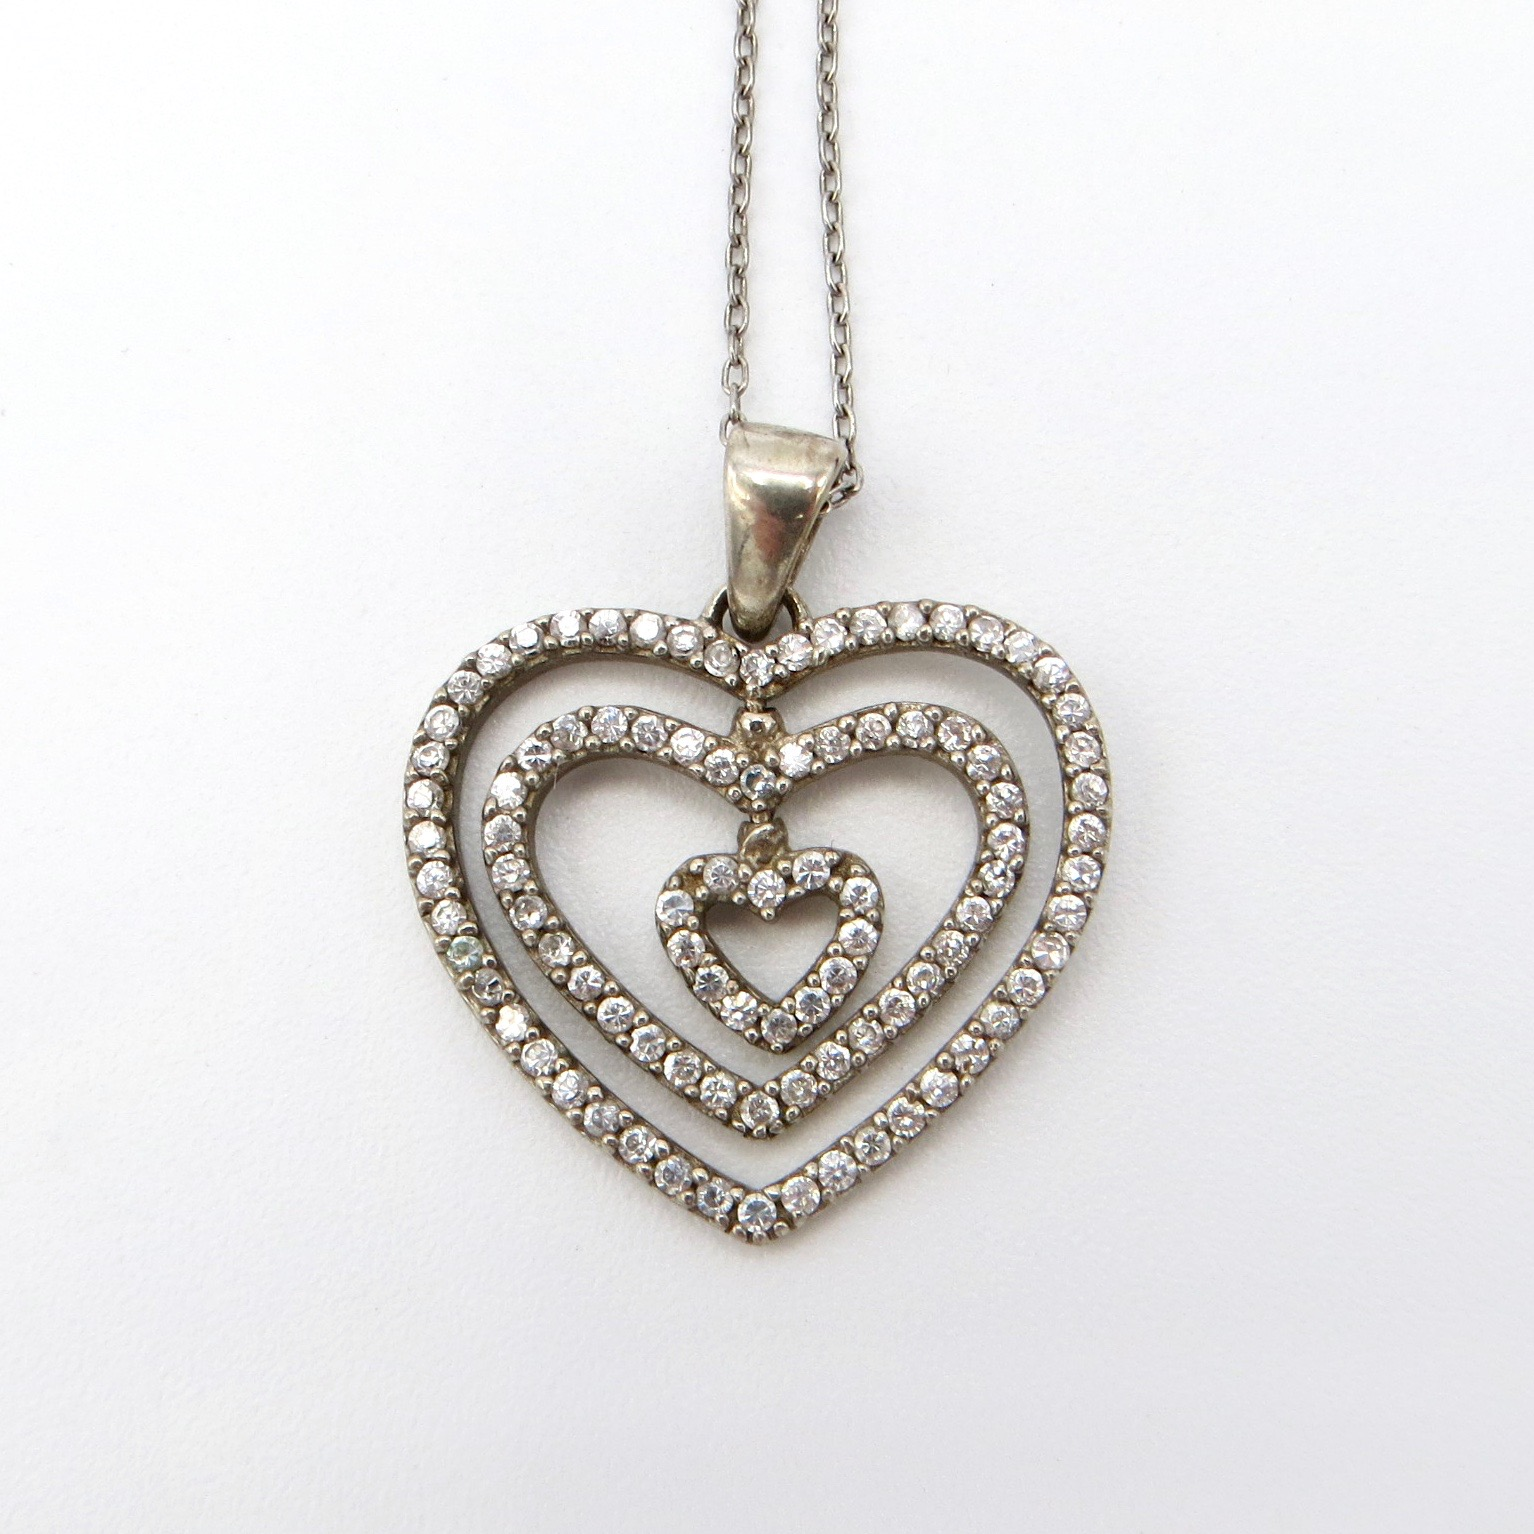 Silver & Crystal Heart Pendant